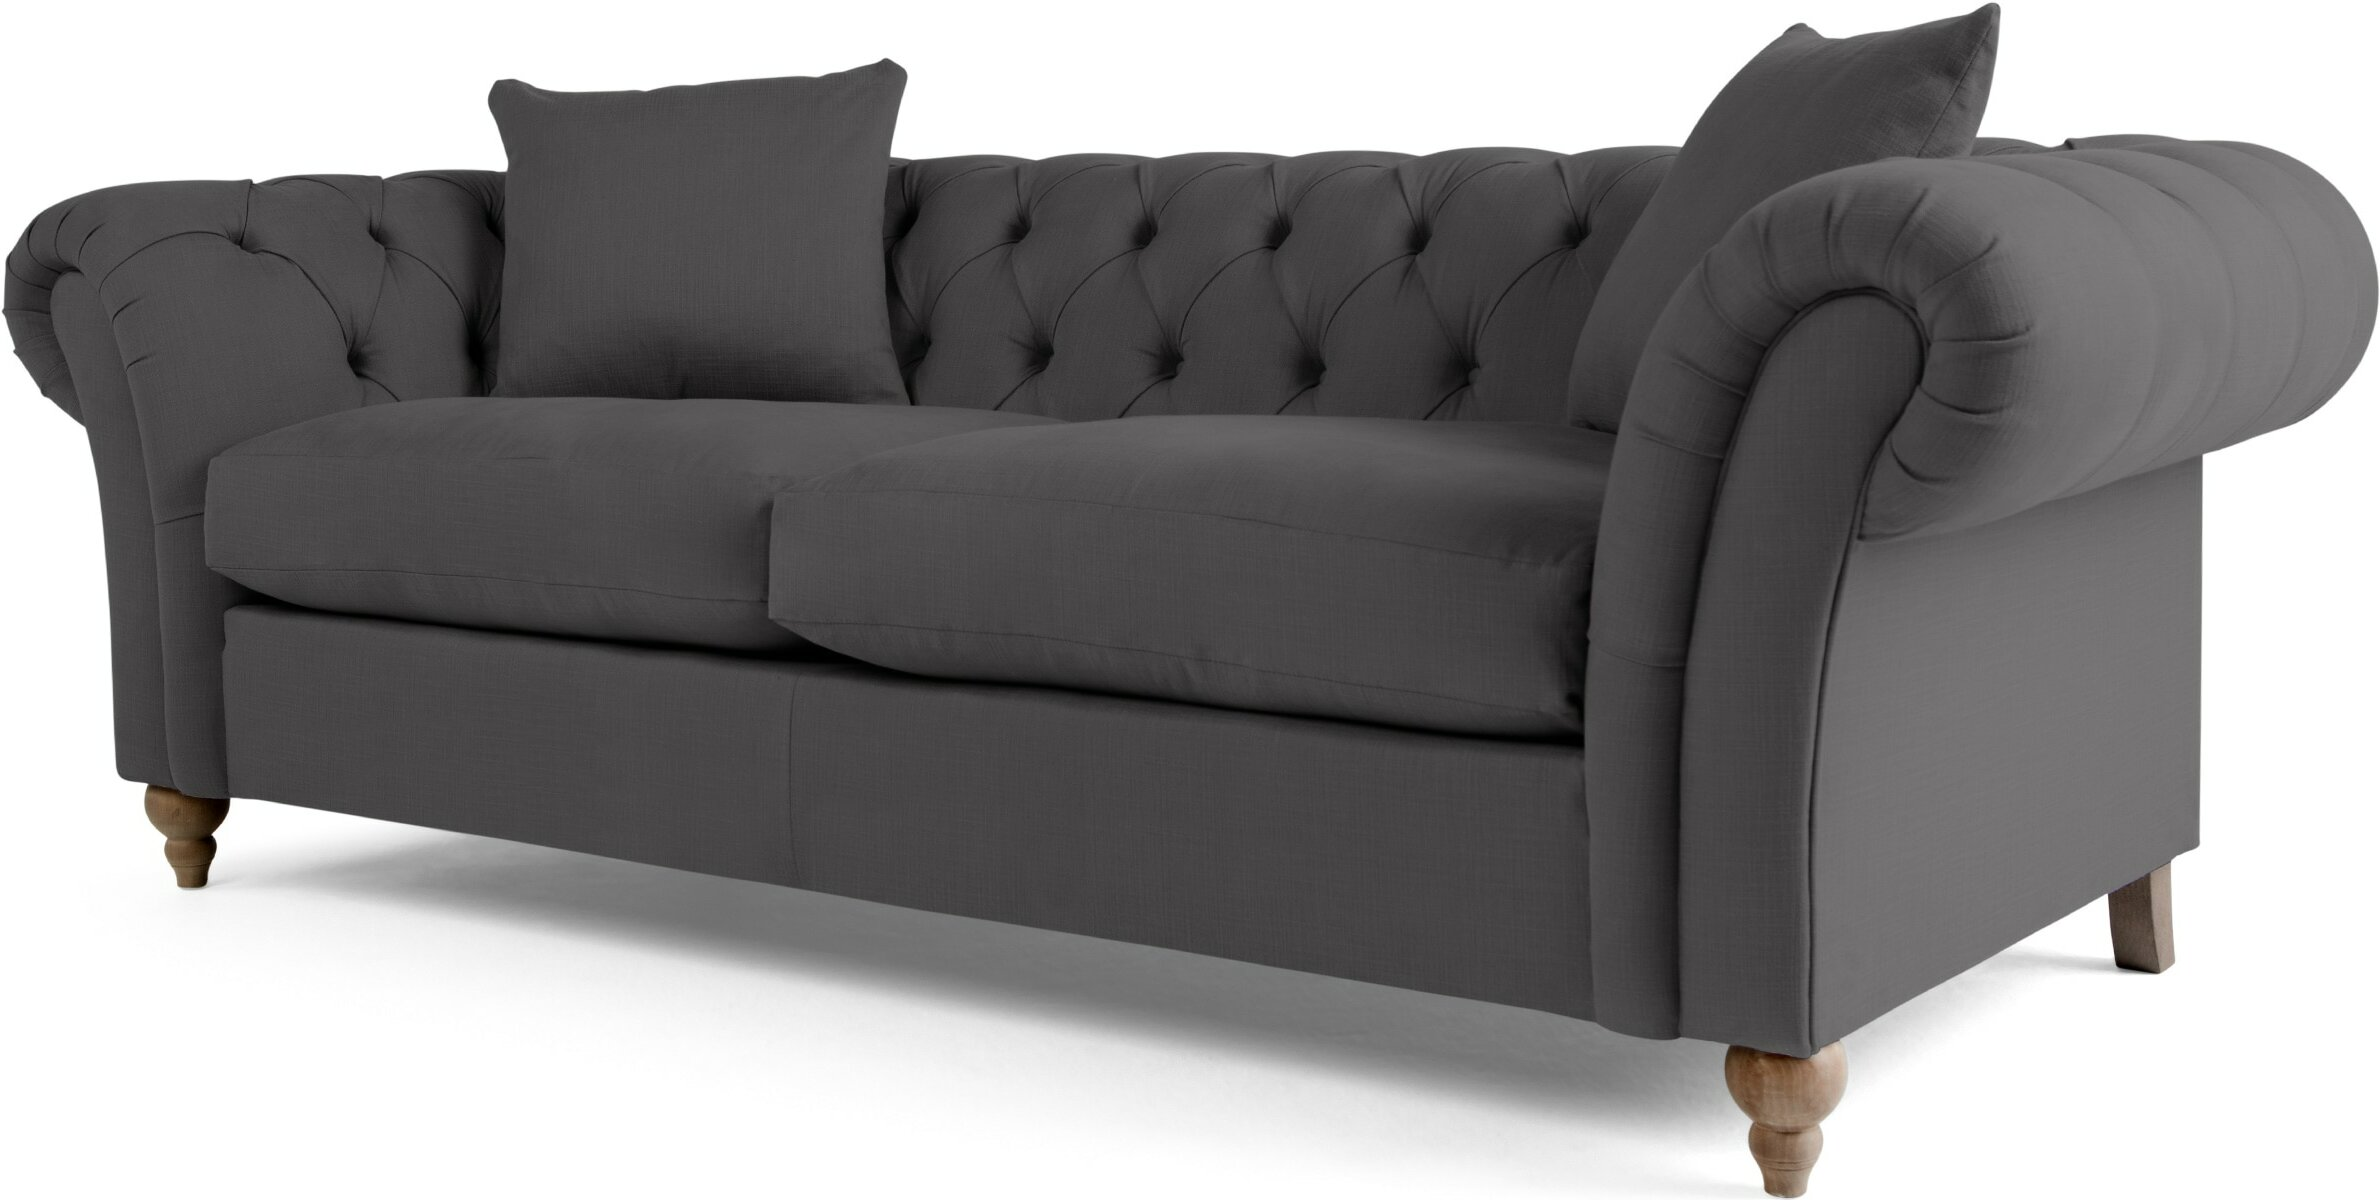 Buy Cheap Grey Chesterfield Sofa Compare Sofas Prices